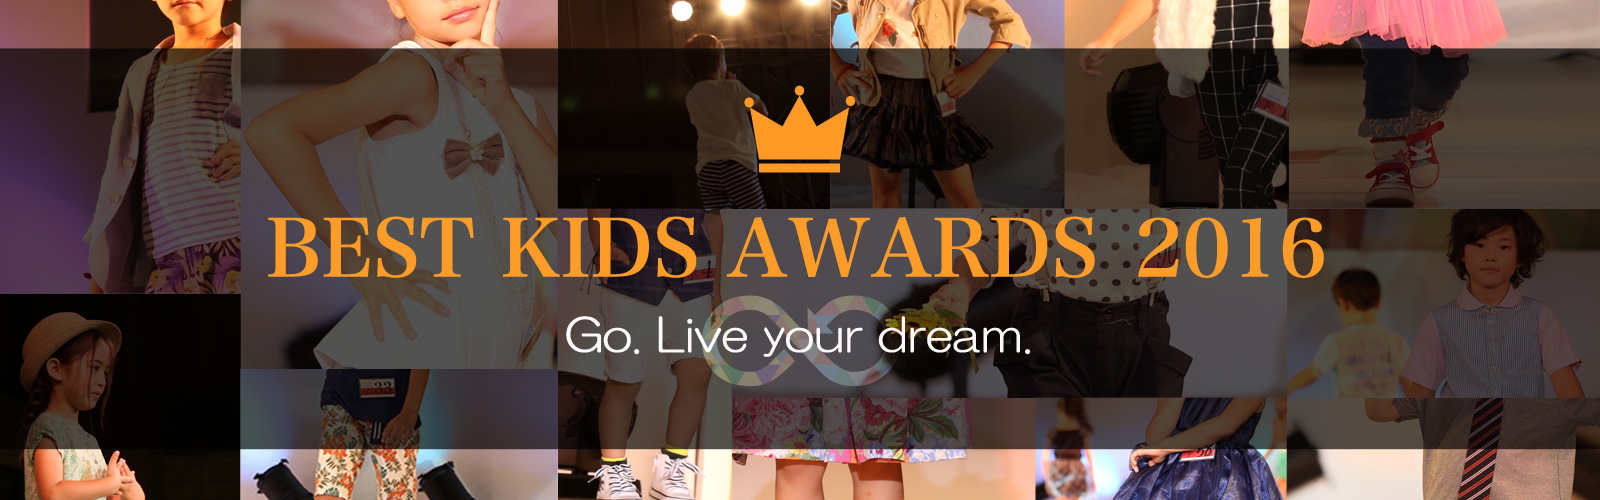 BEST KIDS AWARDS 2017